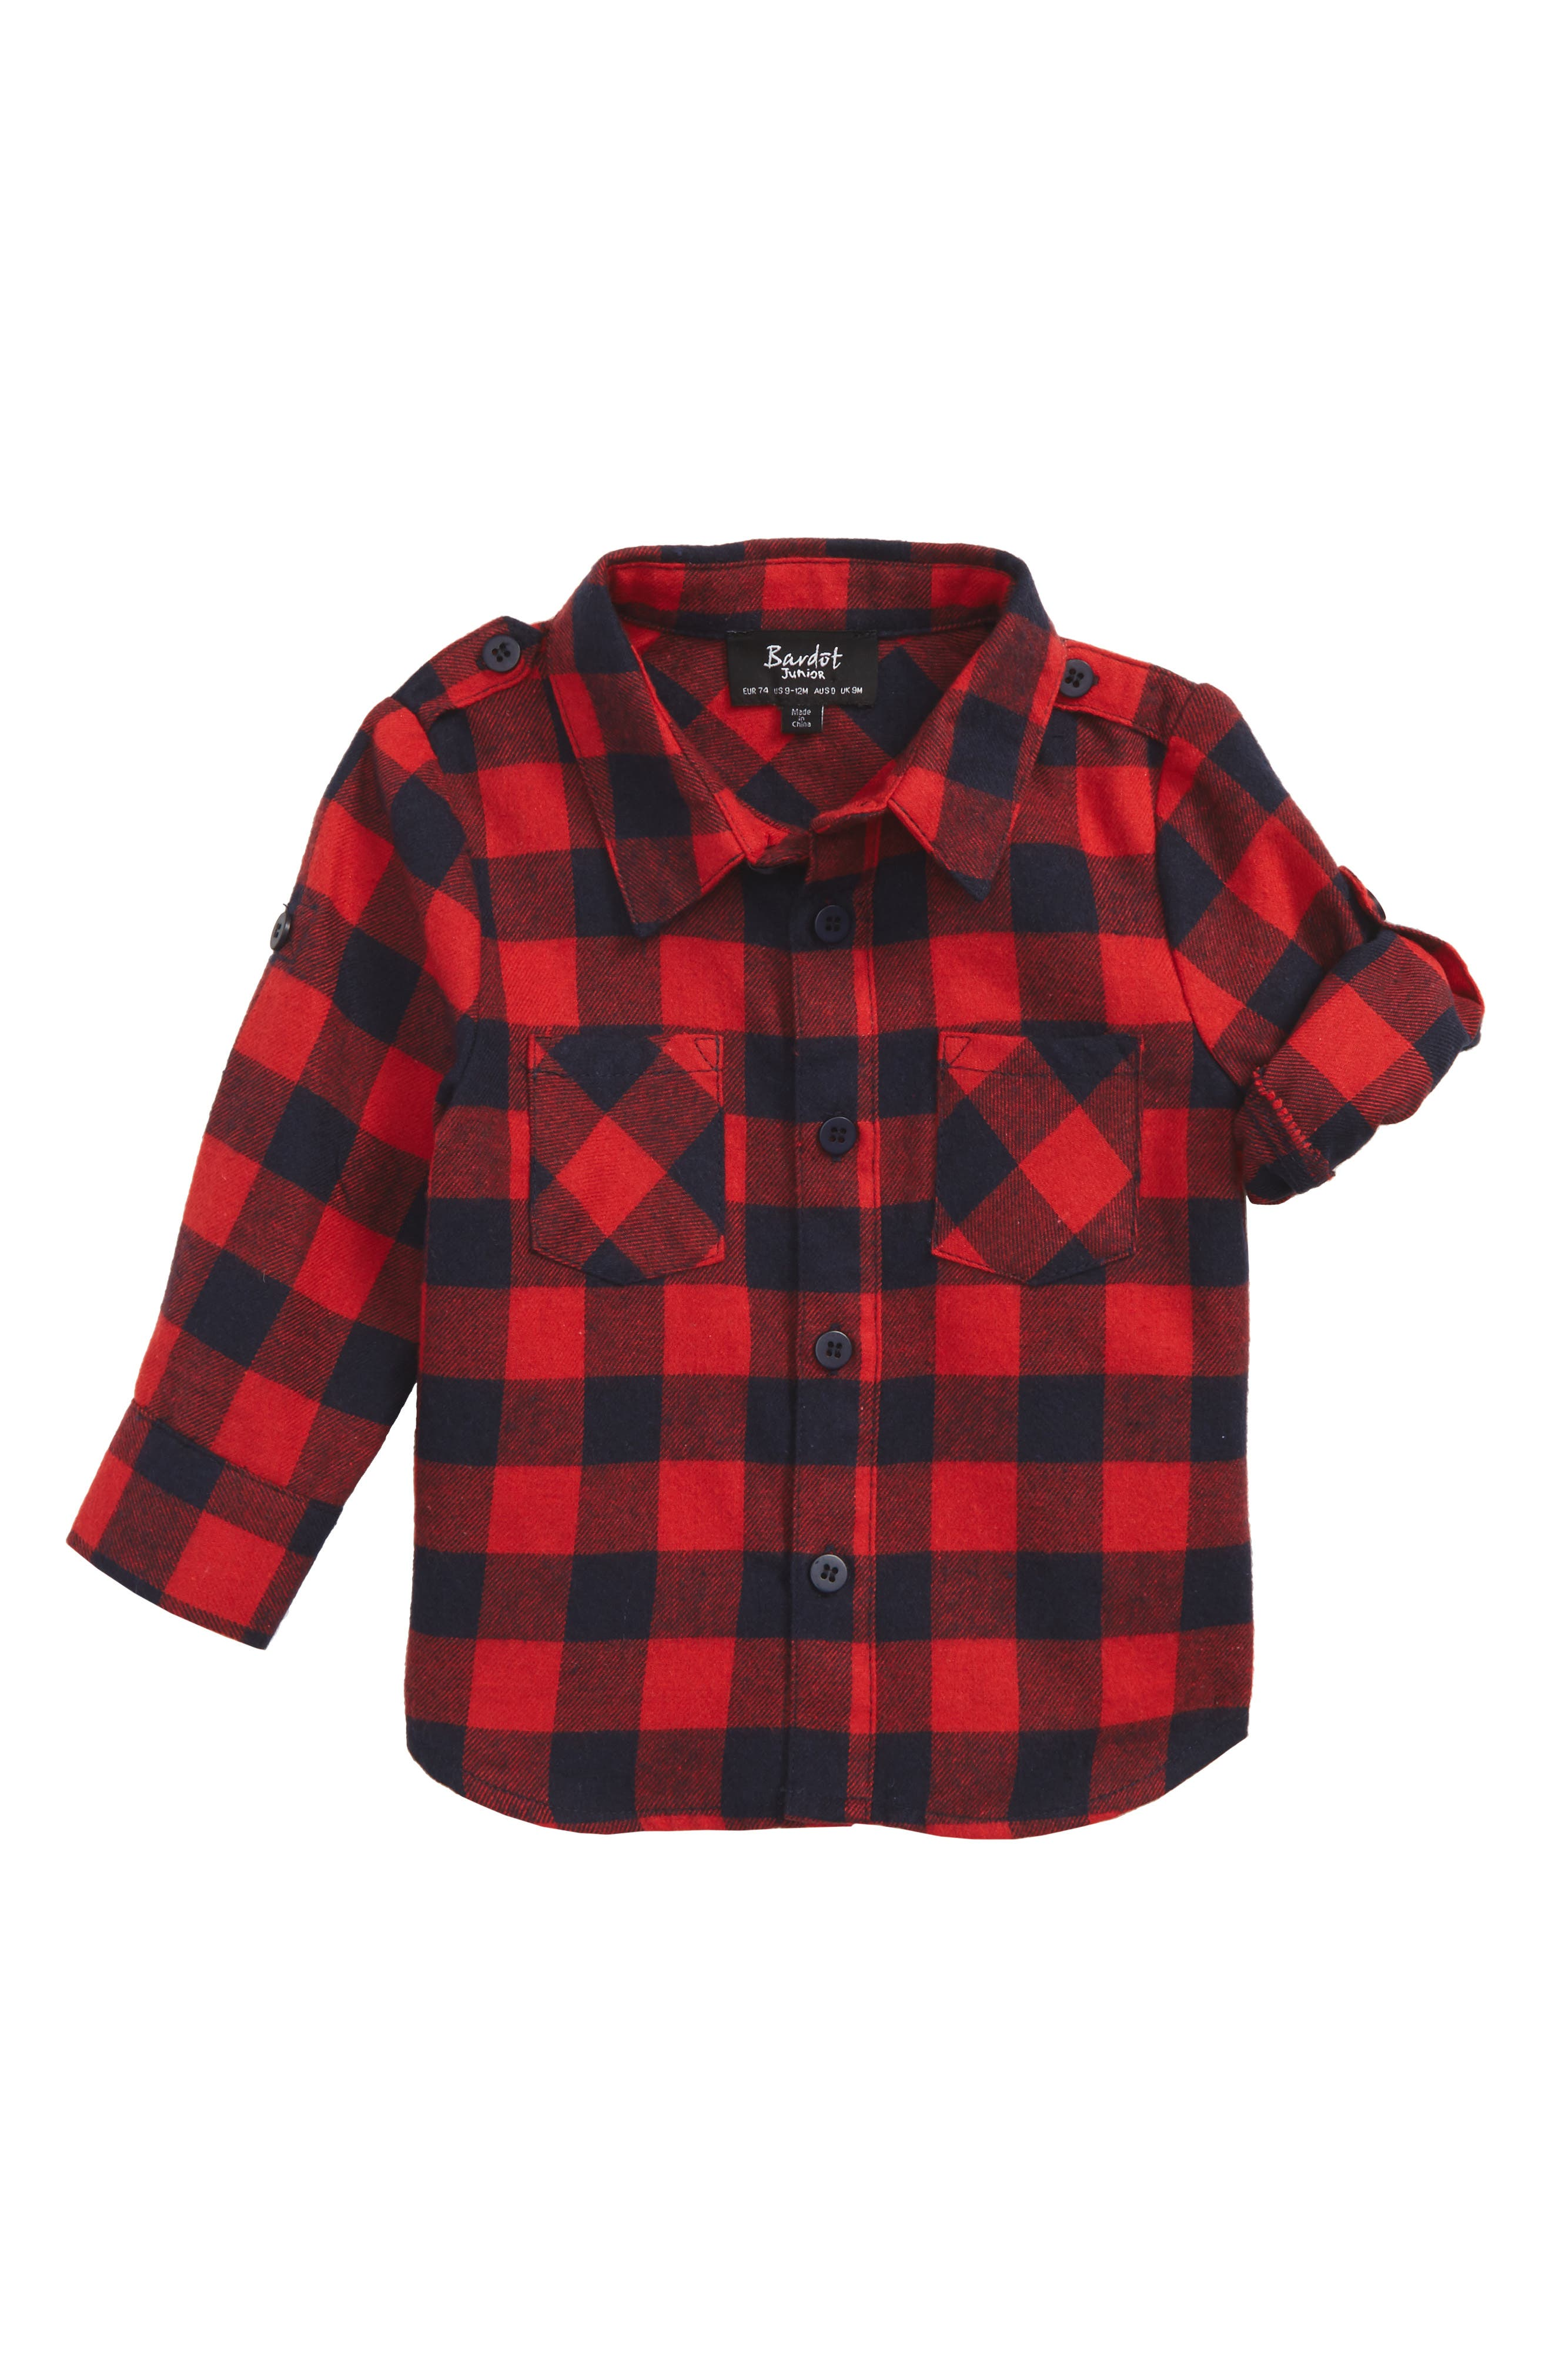 Lucky Check Woven Shirt,                             Main thumbnail 1, color,                             Red/ Navy